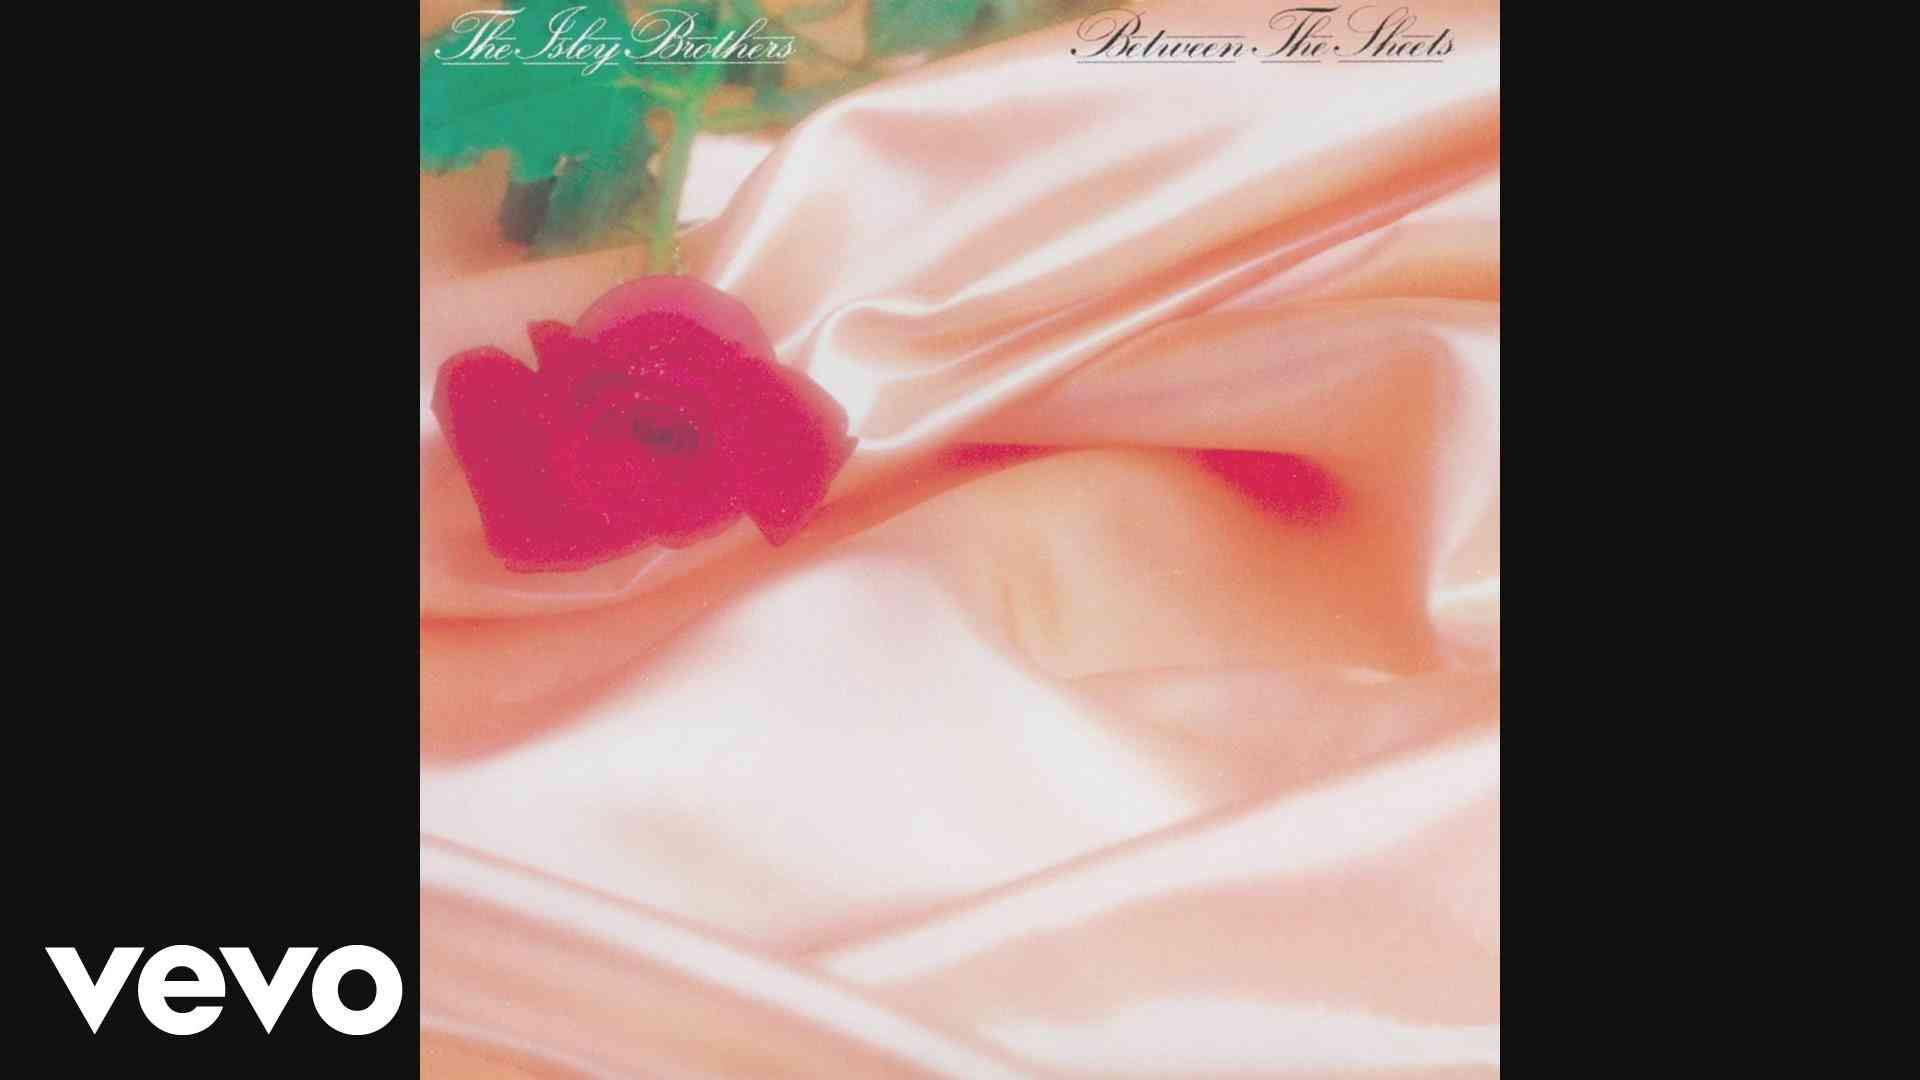 The Isley Brothers - Between the Sheets (Audio) - YouTube